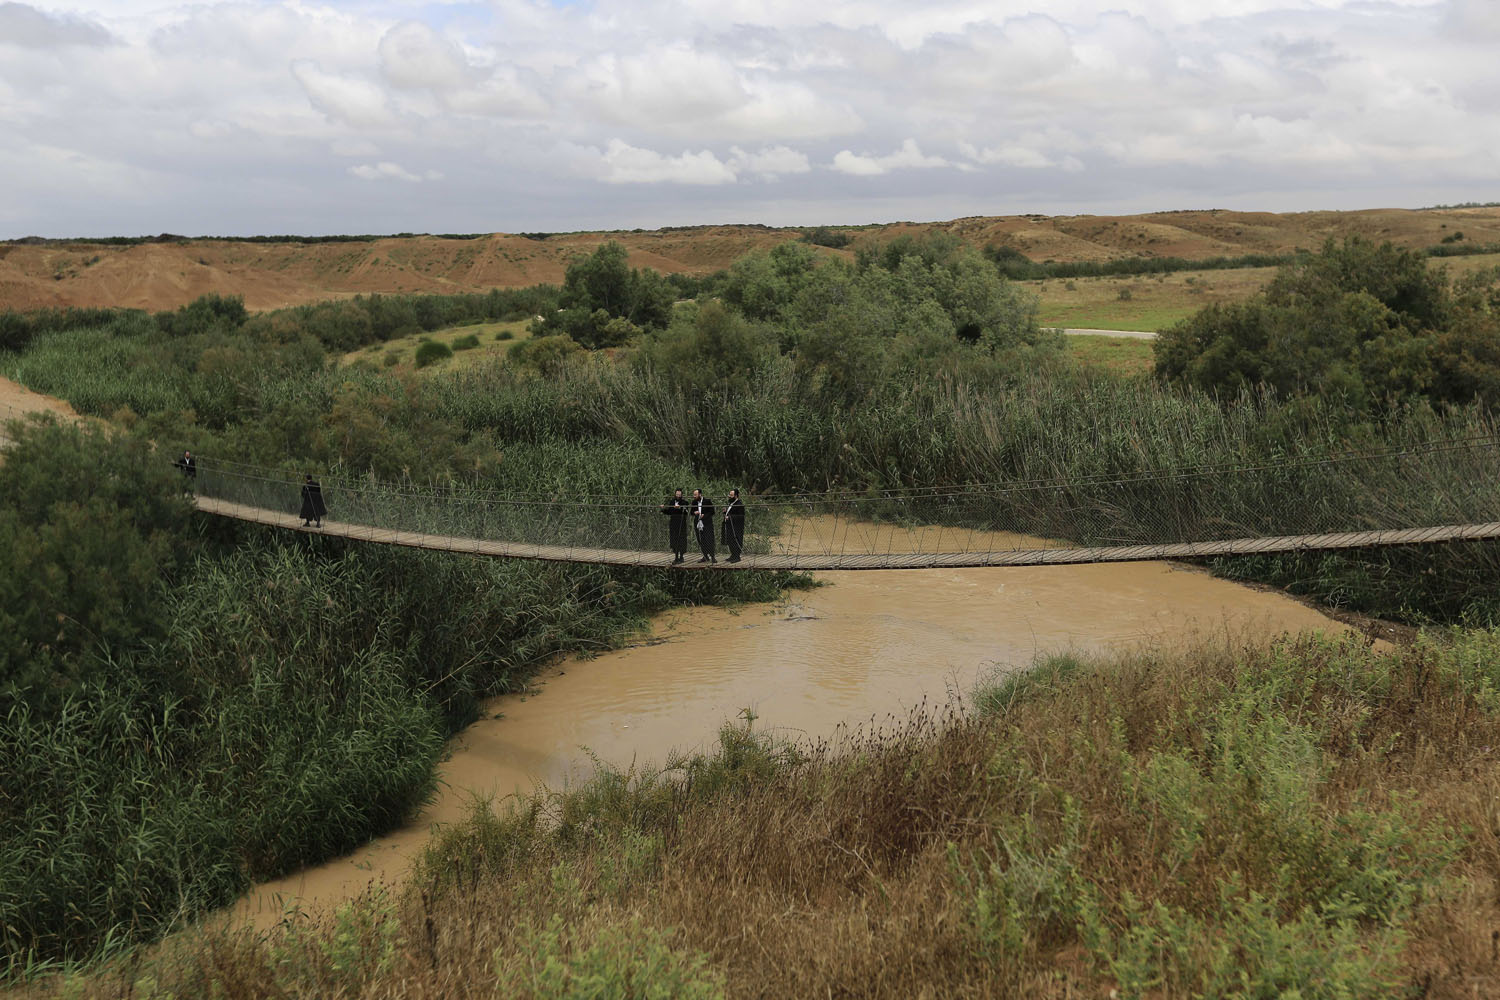 May 8, 2014. Ultra-Orthodox Jewish men walk on the rope bridge over the flooded Besor stream in the southern Negev desert, Israel,